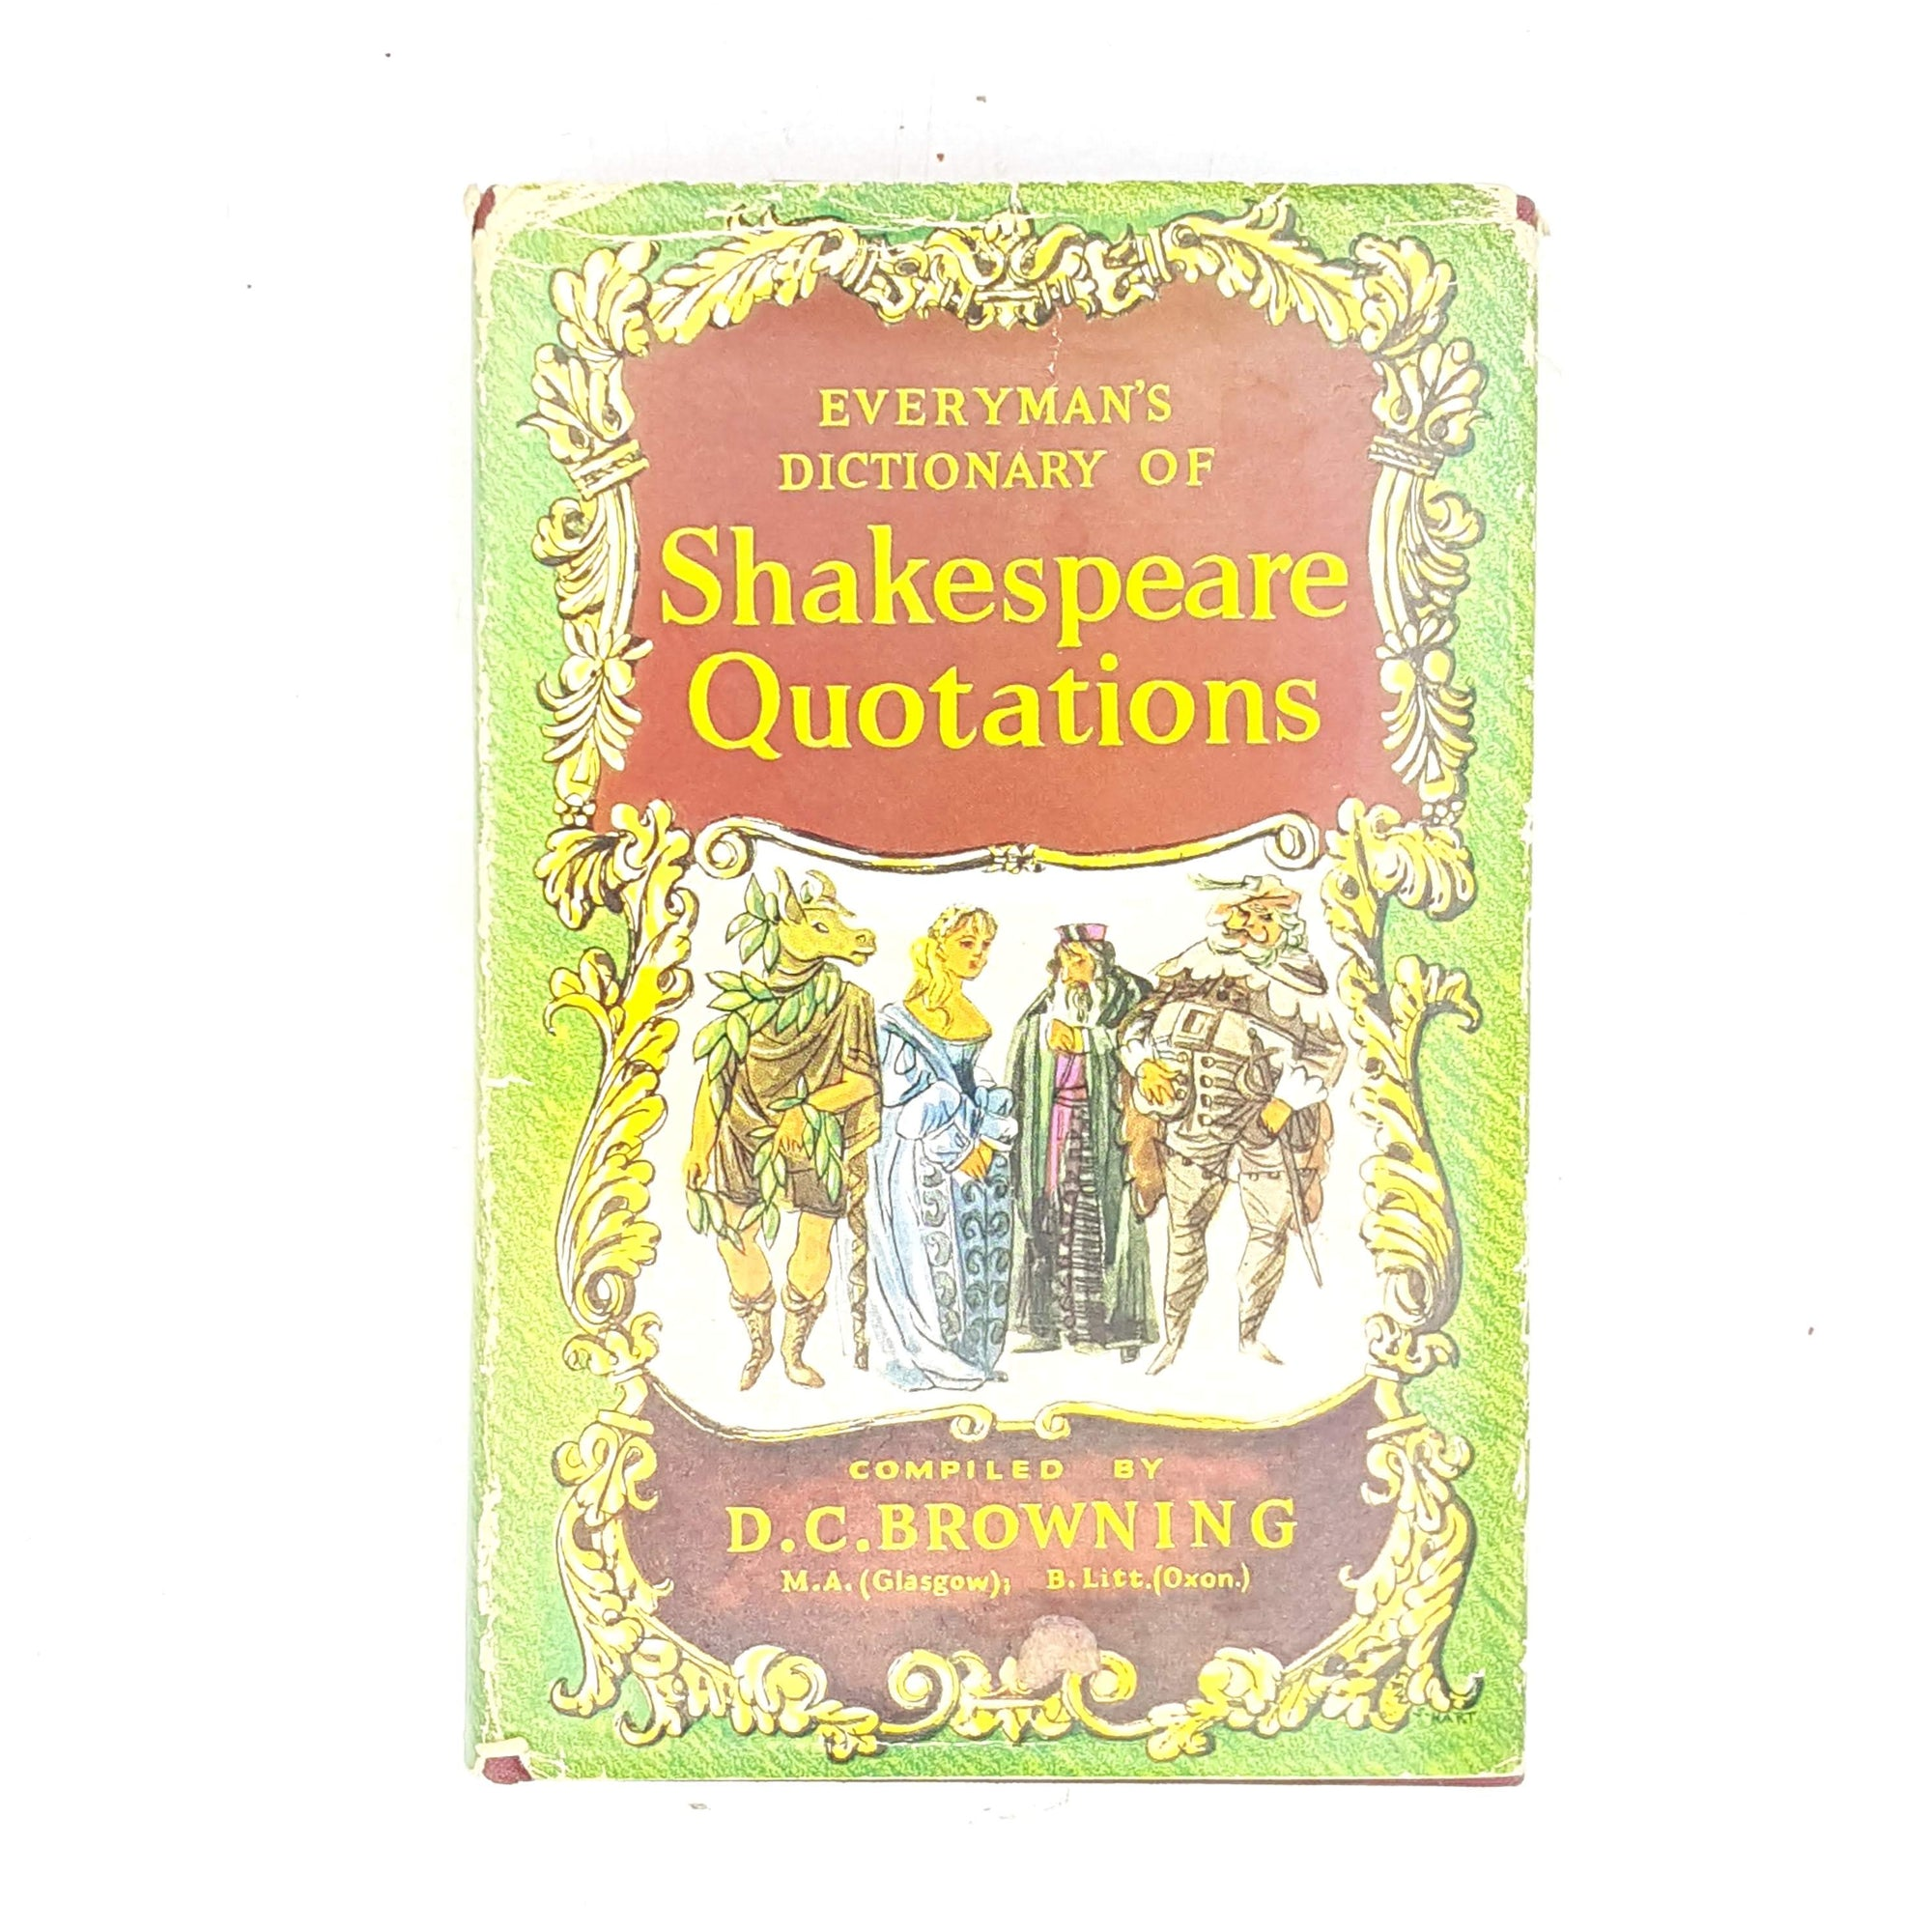 green-yellow-england-old-plays-colour-prose-shakespeare-week-writing-quotes-1964-shakespeare-poetry-thrift-books-country-house-library-colour-quotations-